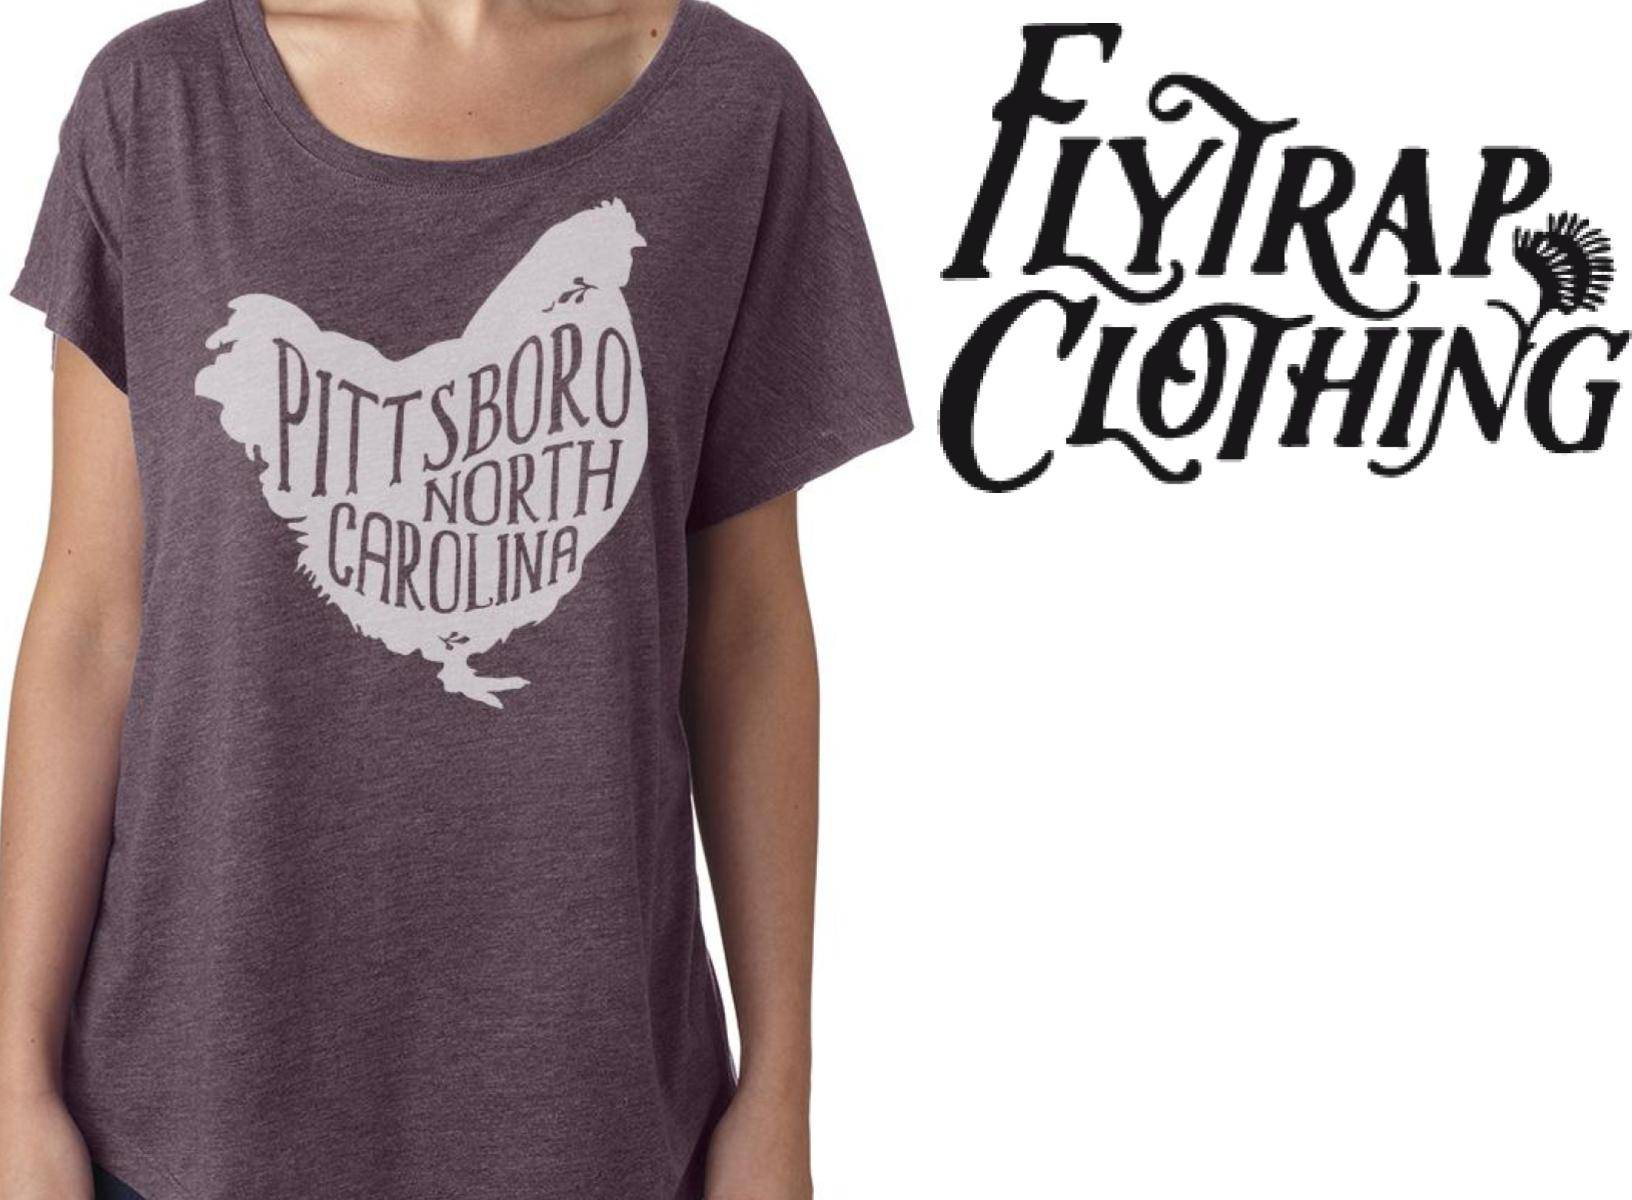 """We <i class=""""icon-apero icon--heart""""></i> Local <br> <br> Exclusive prints to show your love for Pittsboro <br> hand-printed here in town"""